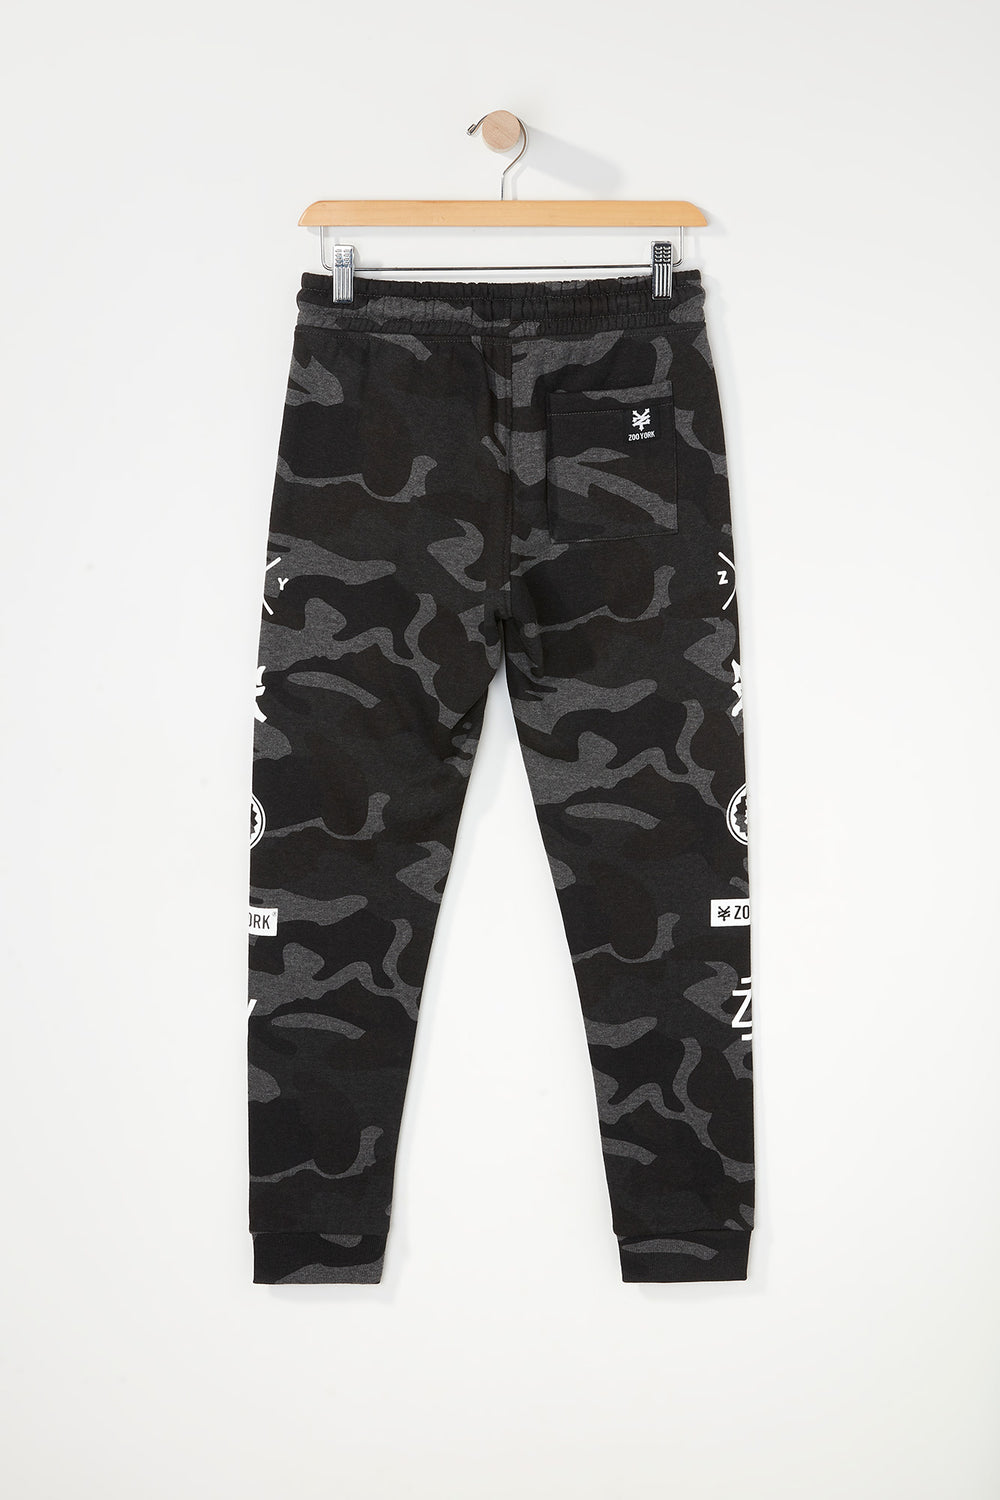 Zoo York Boys Camo Jogger Black with White